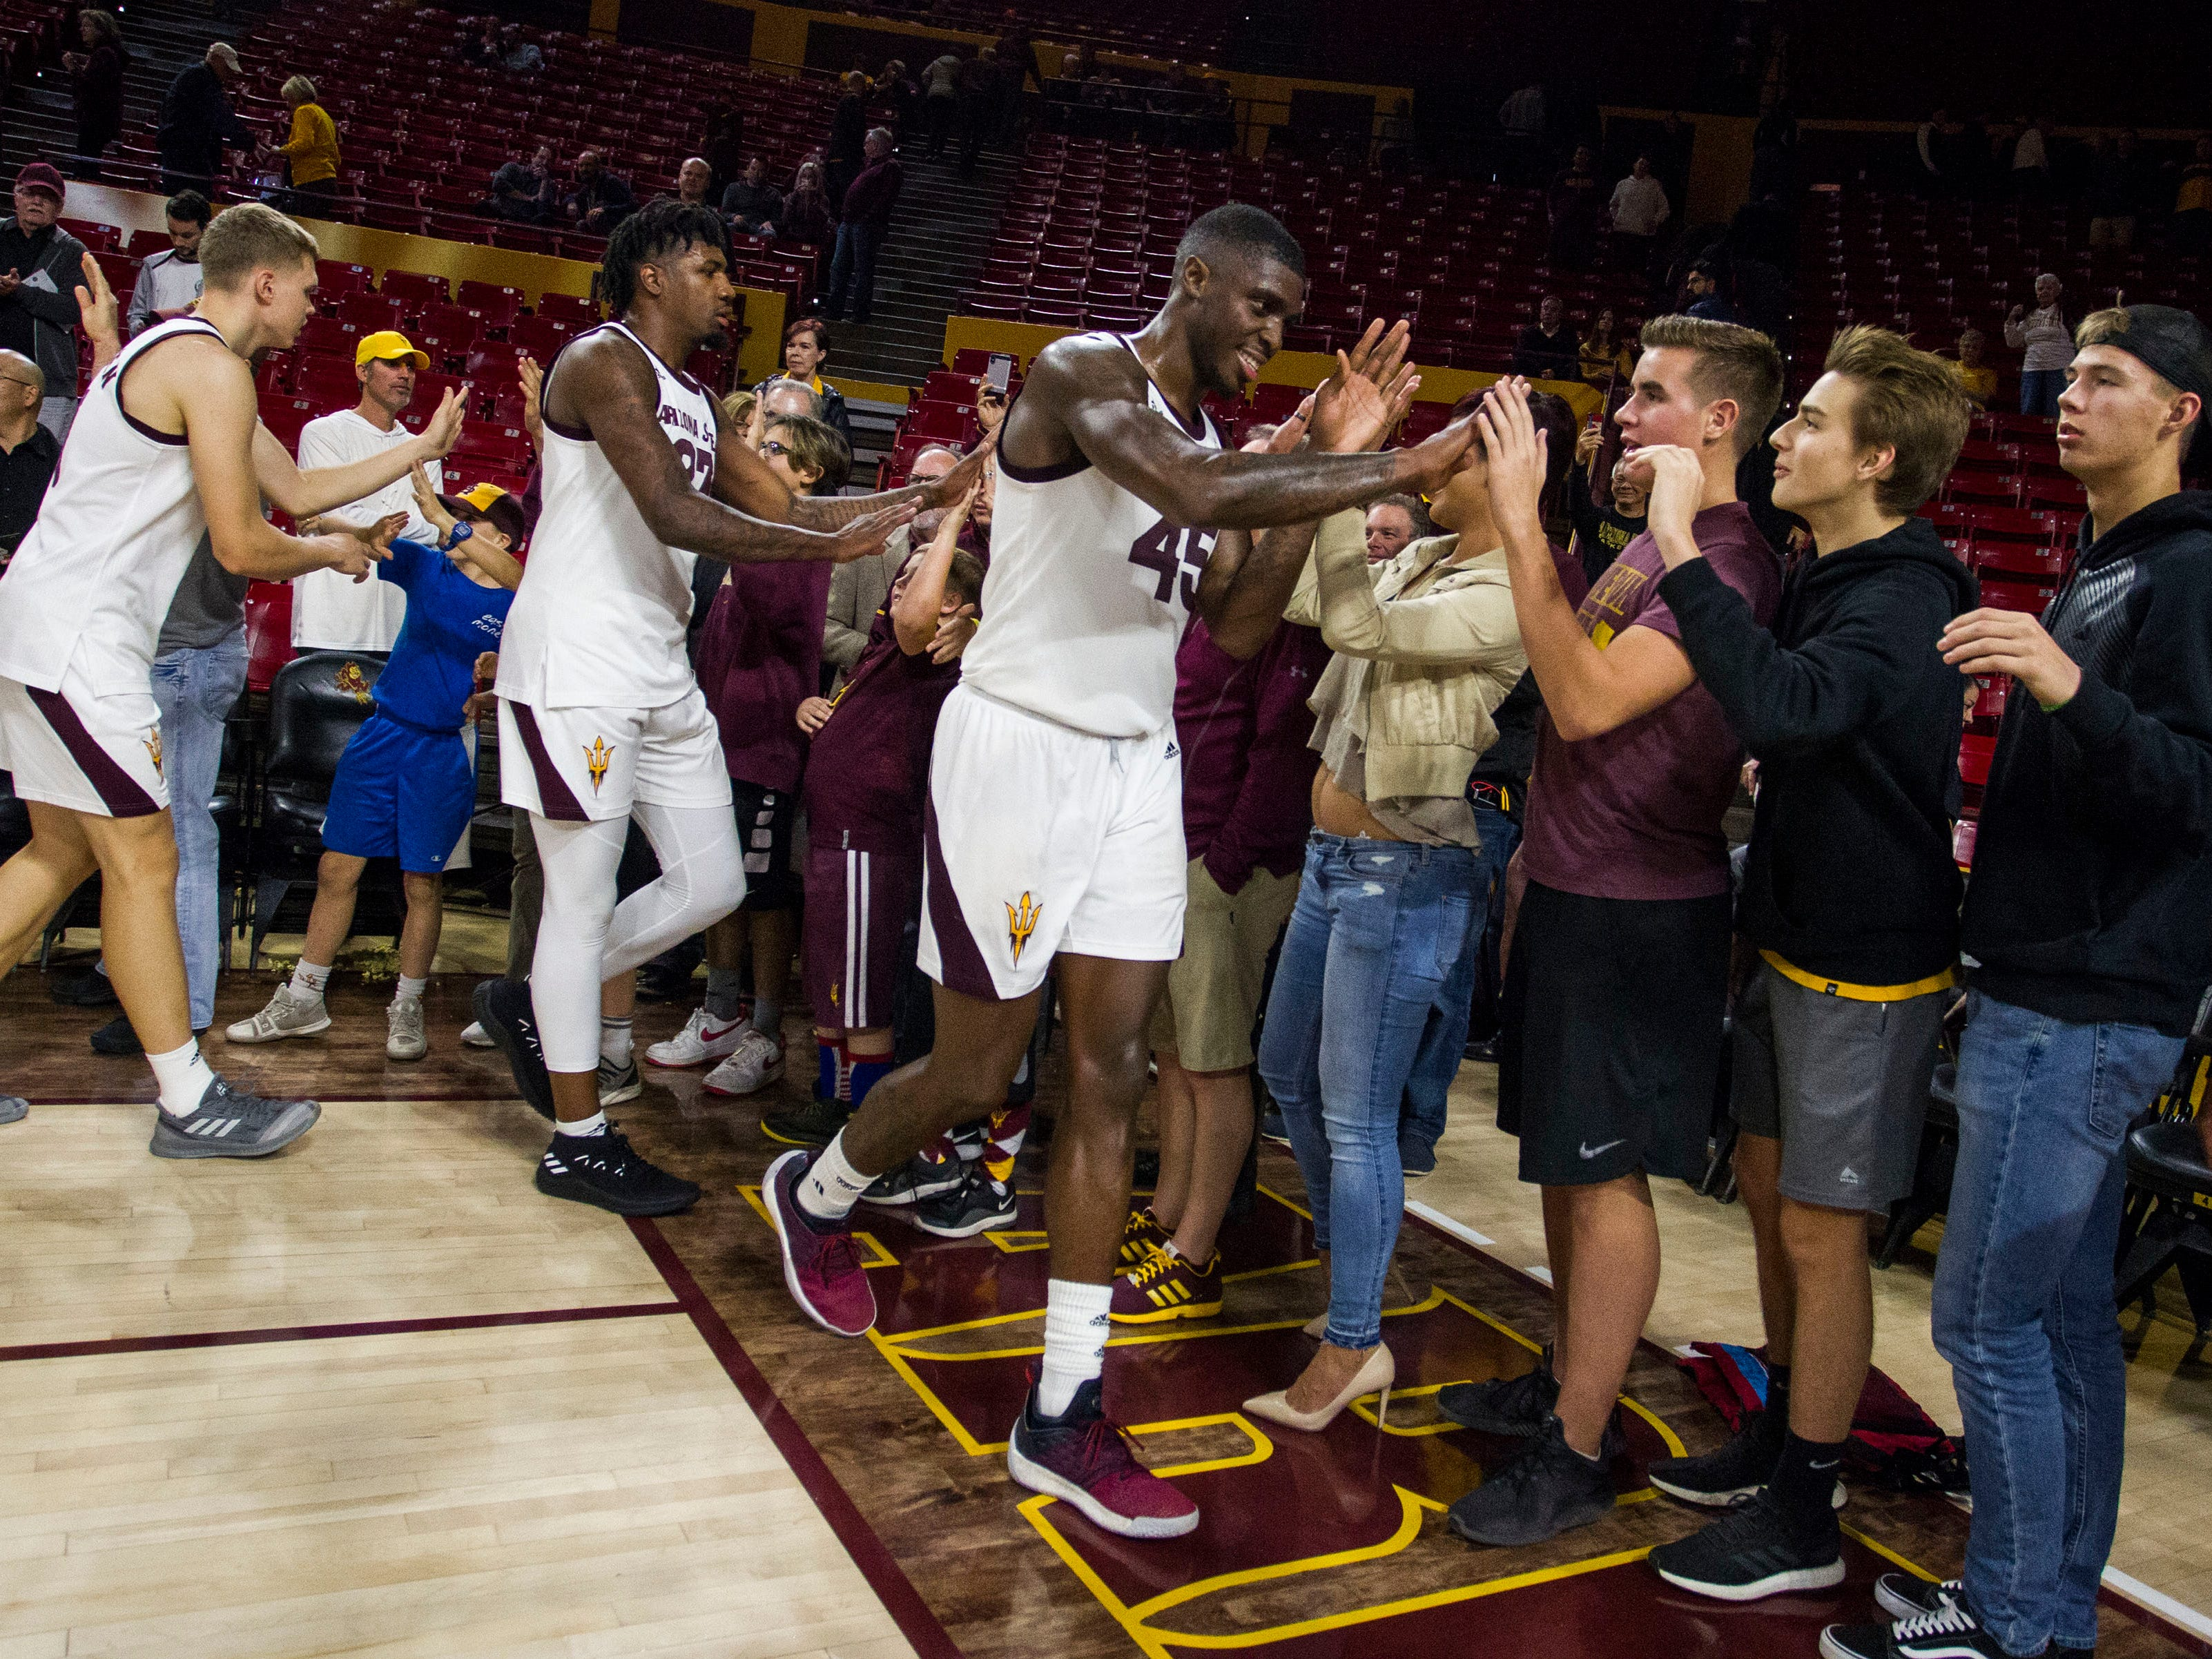 Arizona State University's Zylan Cheatham greets fans basket  after their game against Nebraska Omaha in Tempe, Wednesday, Nov.28,  2018. Darryl Webb/Special for the Republic